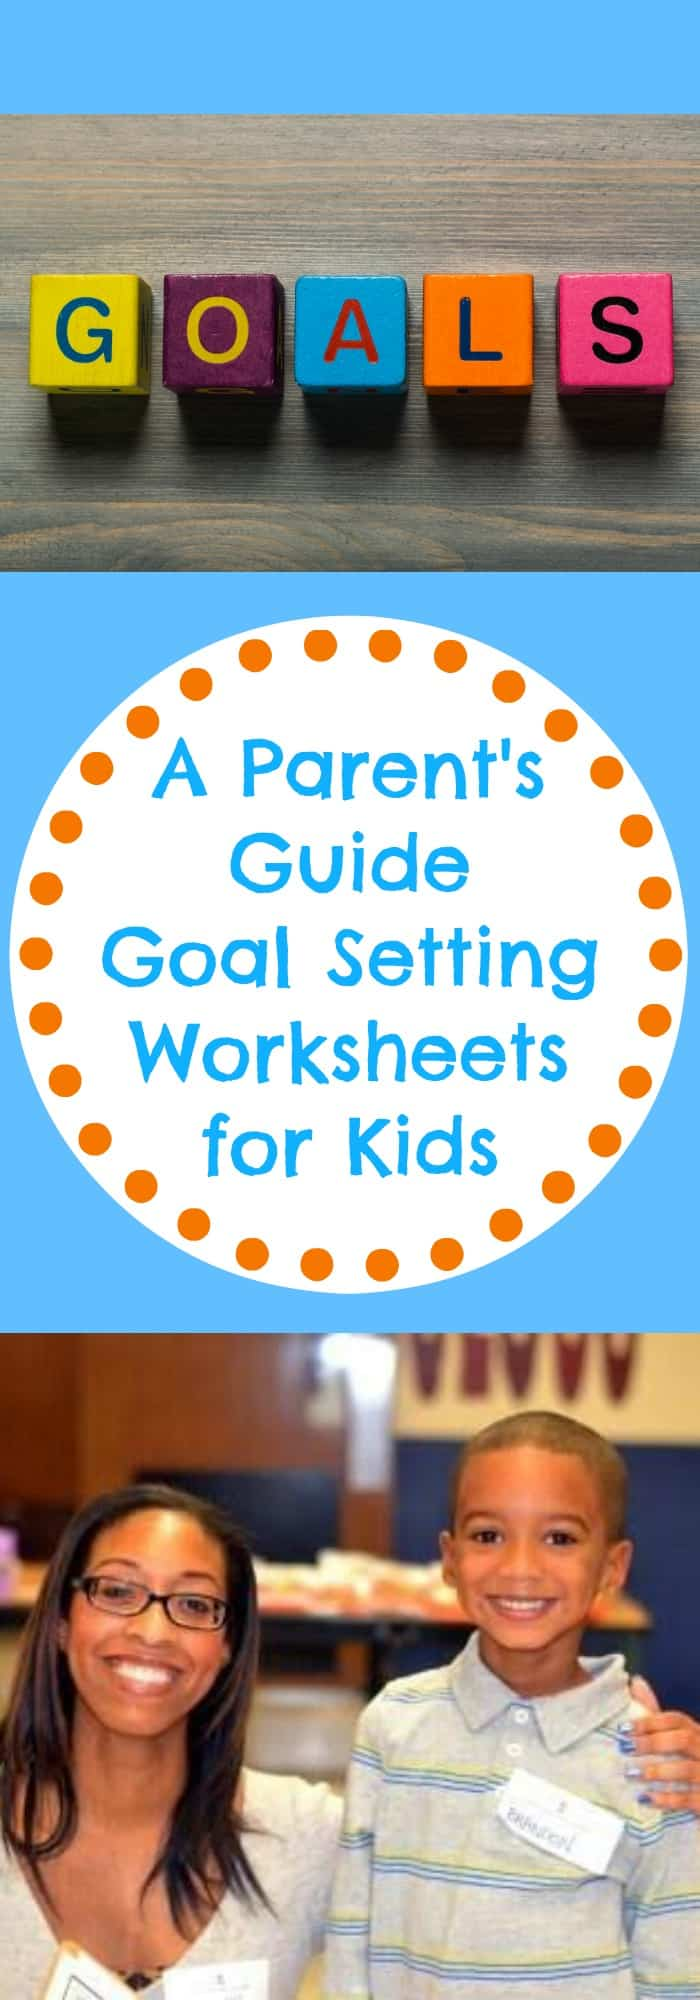 Parenting--A Parent's Guide Goal Setting Worksheets for Kids--The Organized Mom